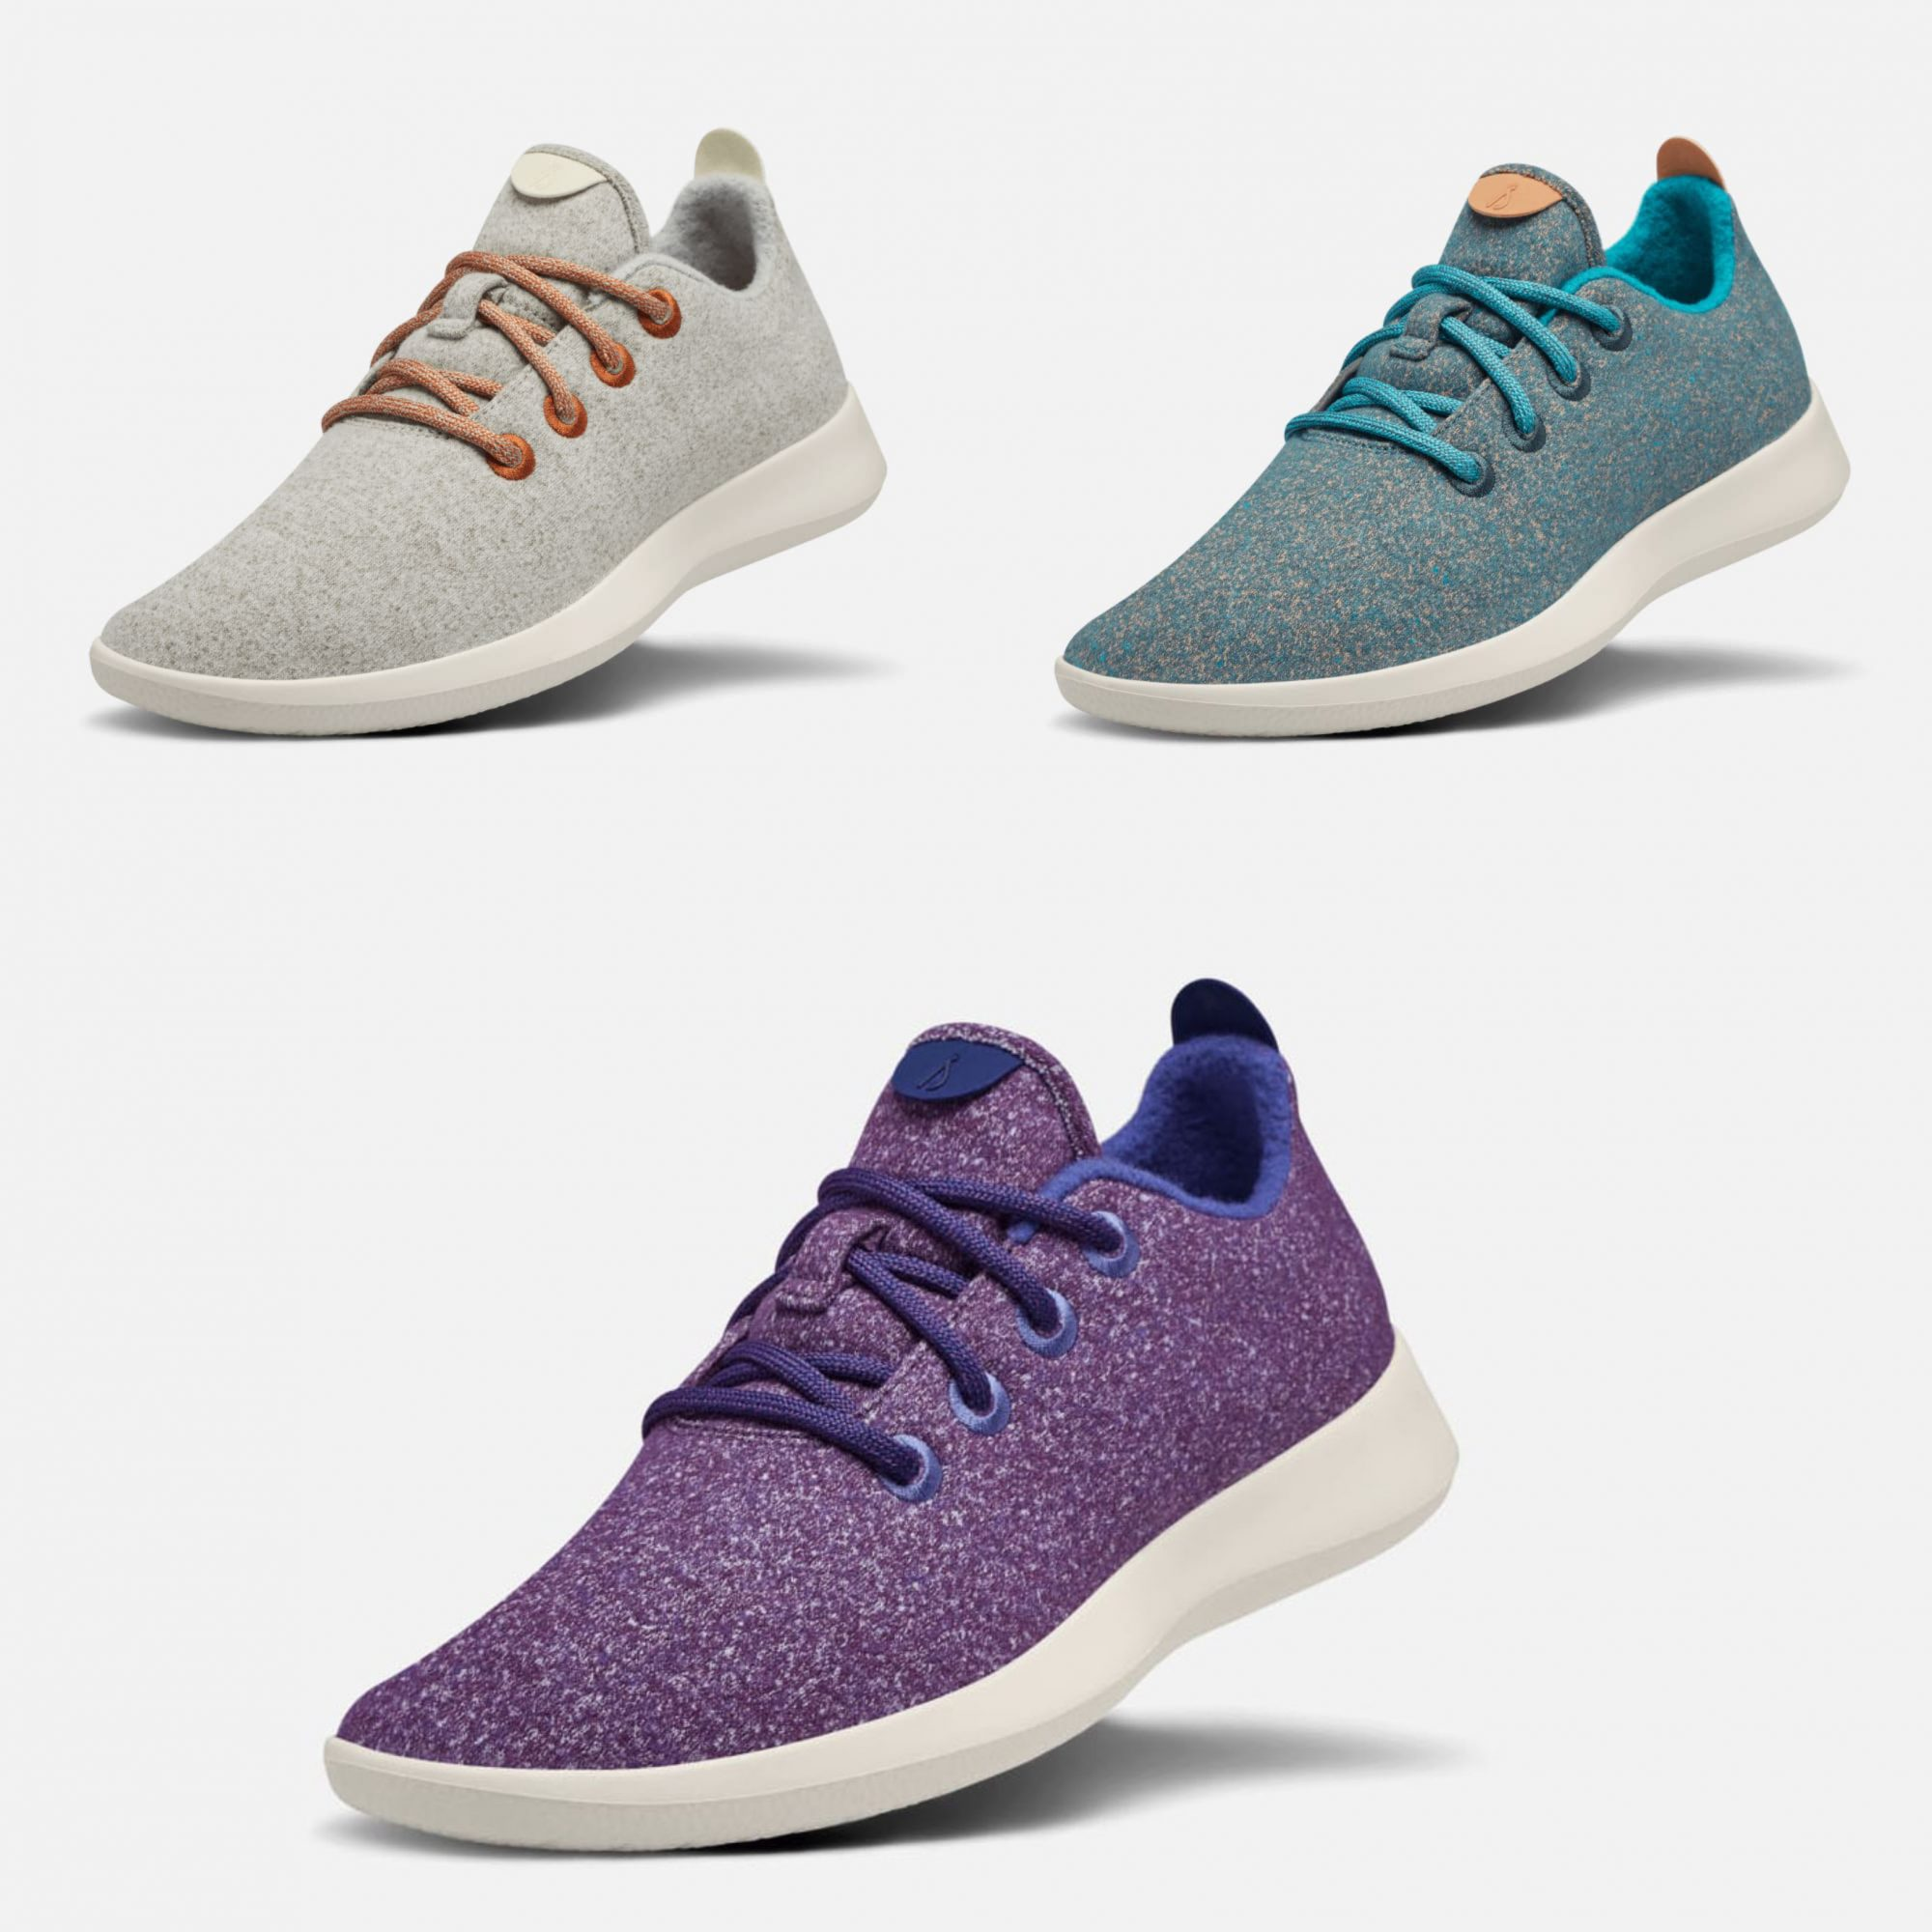 Allbirds just dropped more limited edition styles and they're selling out fast